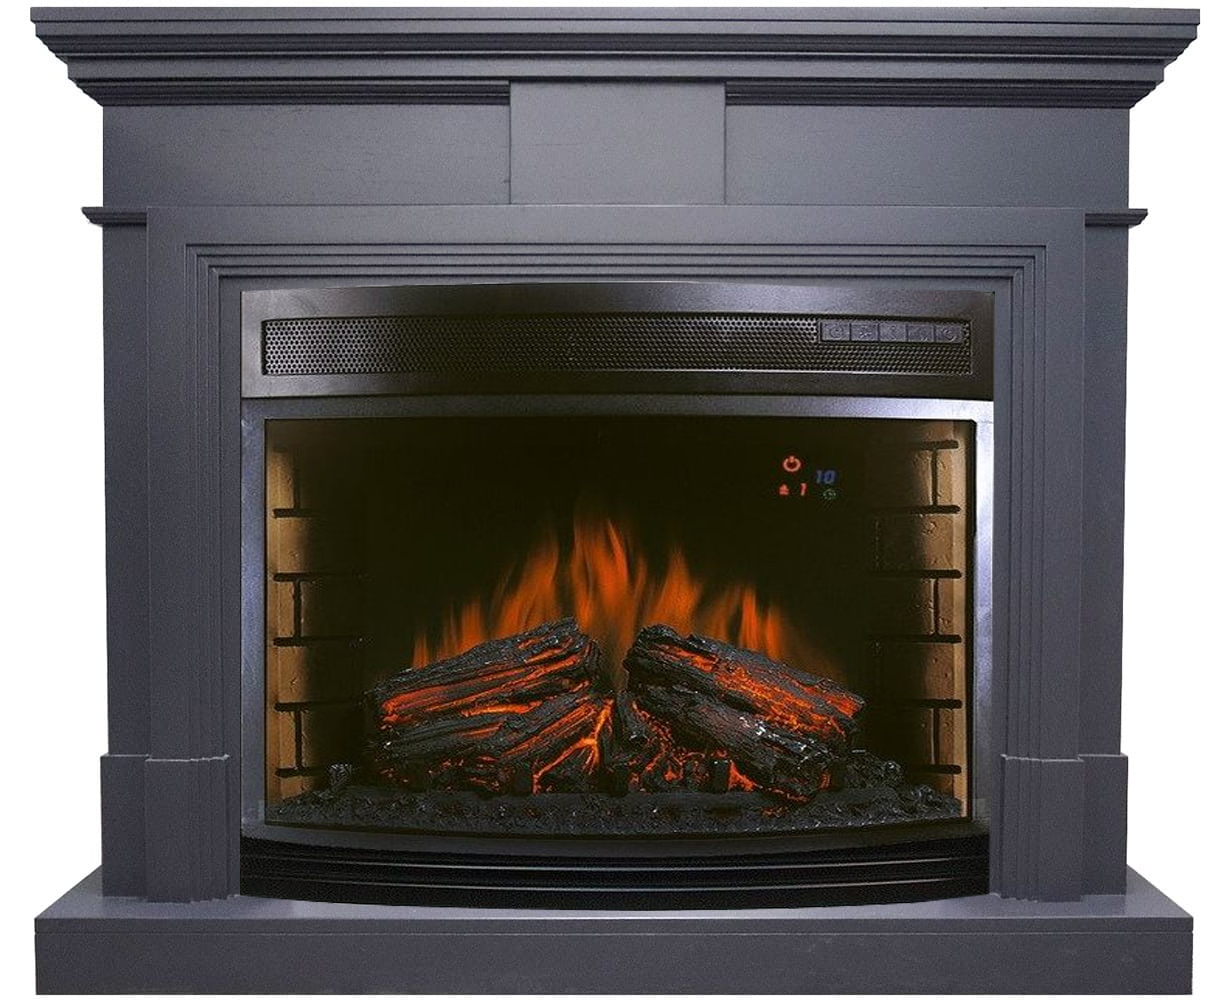 Каминокомплект Royal Flame Coventry Graphite Grey с очагом Dioramic 28 LED FX